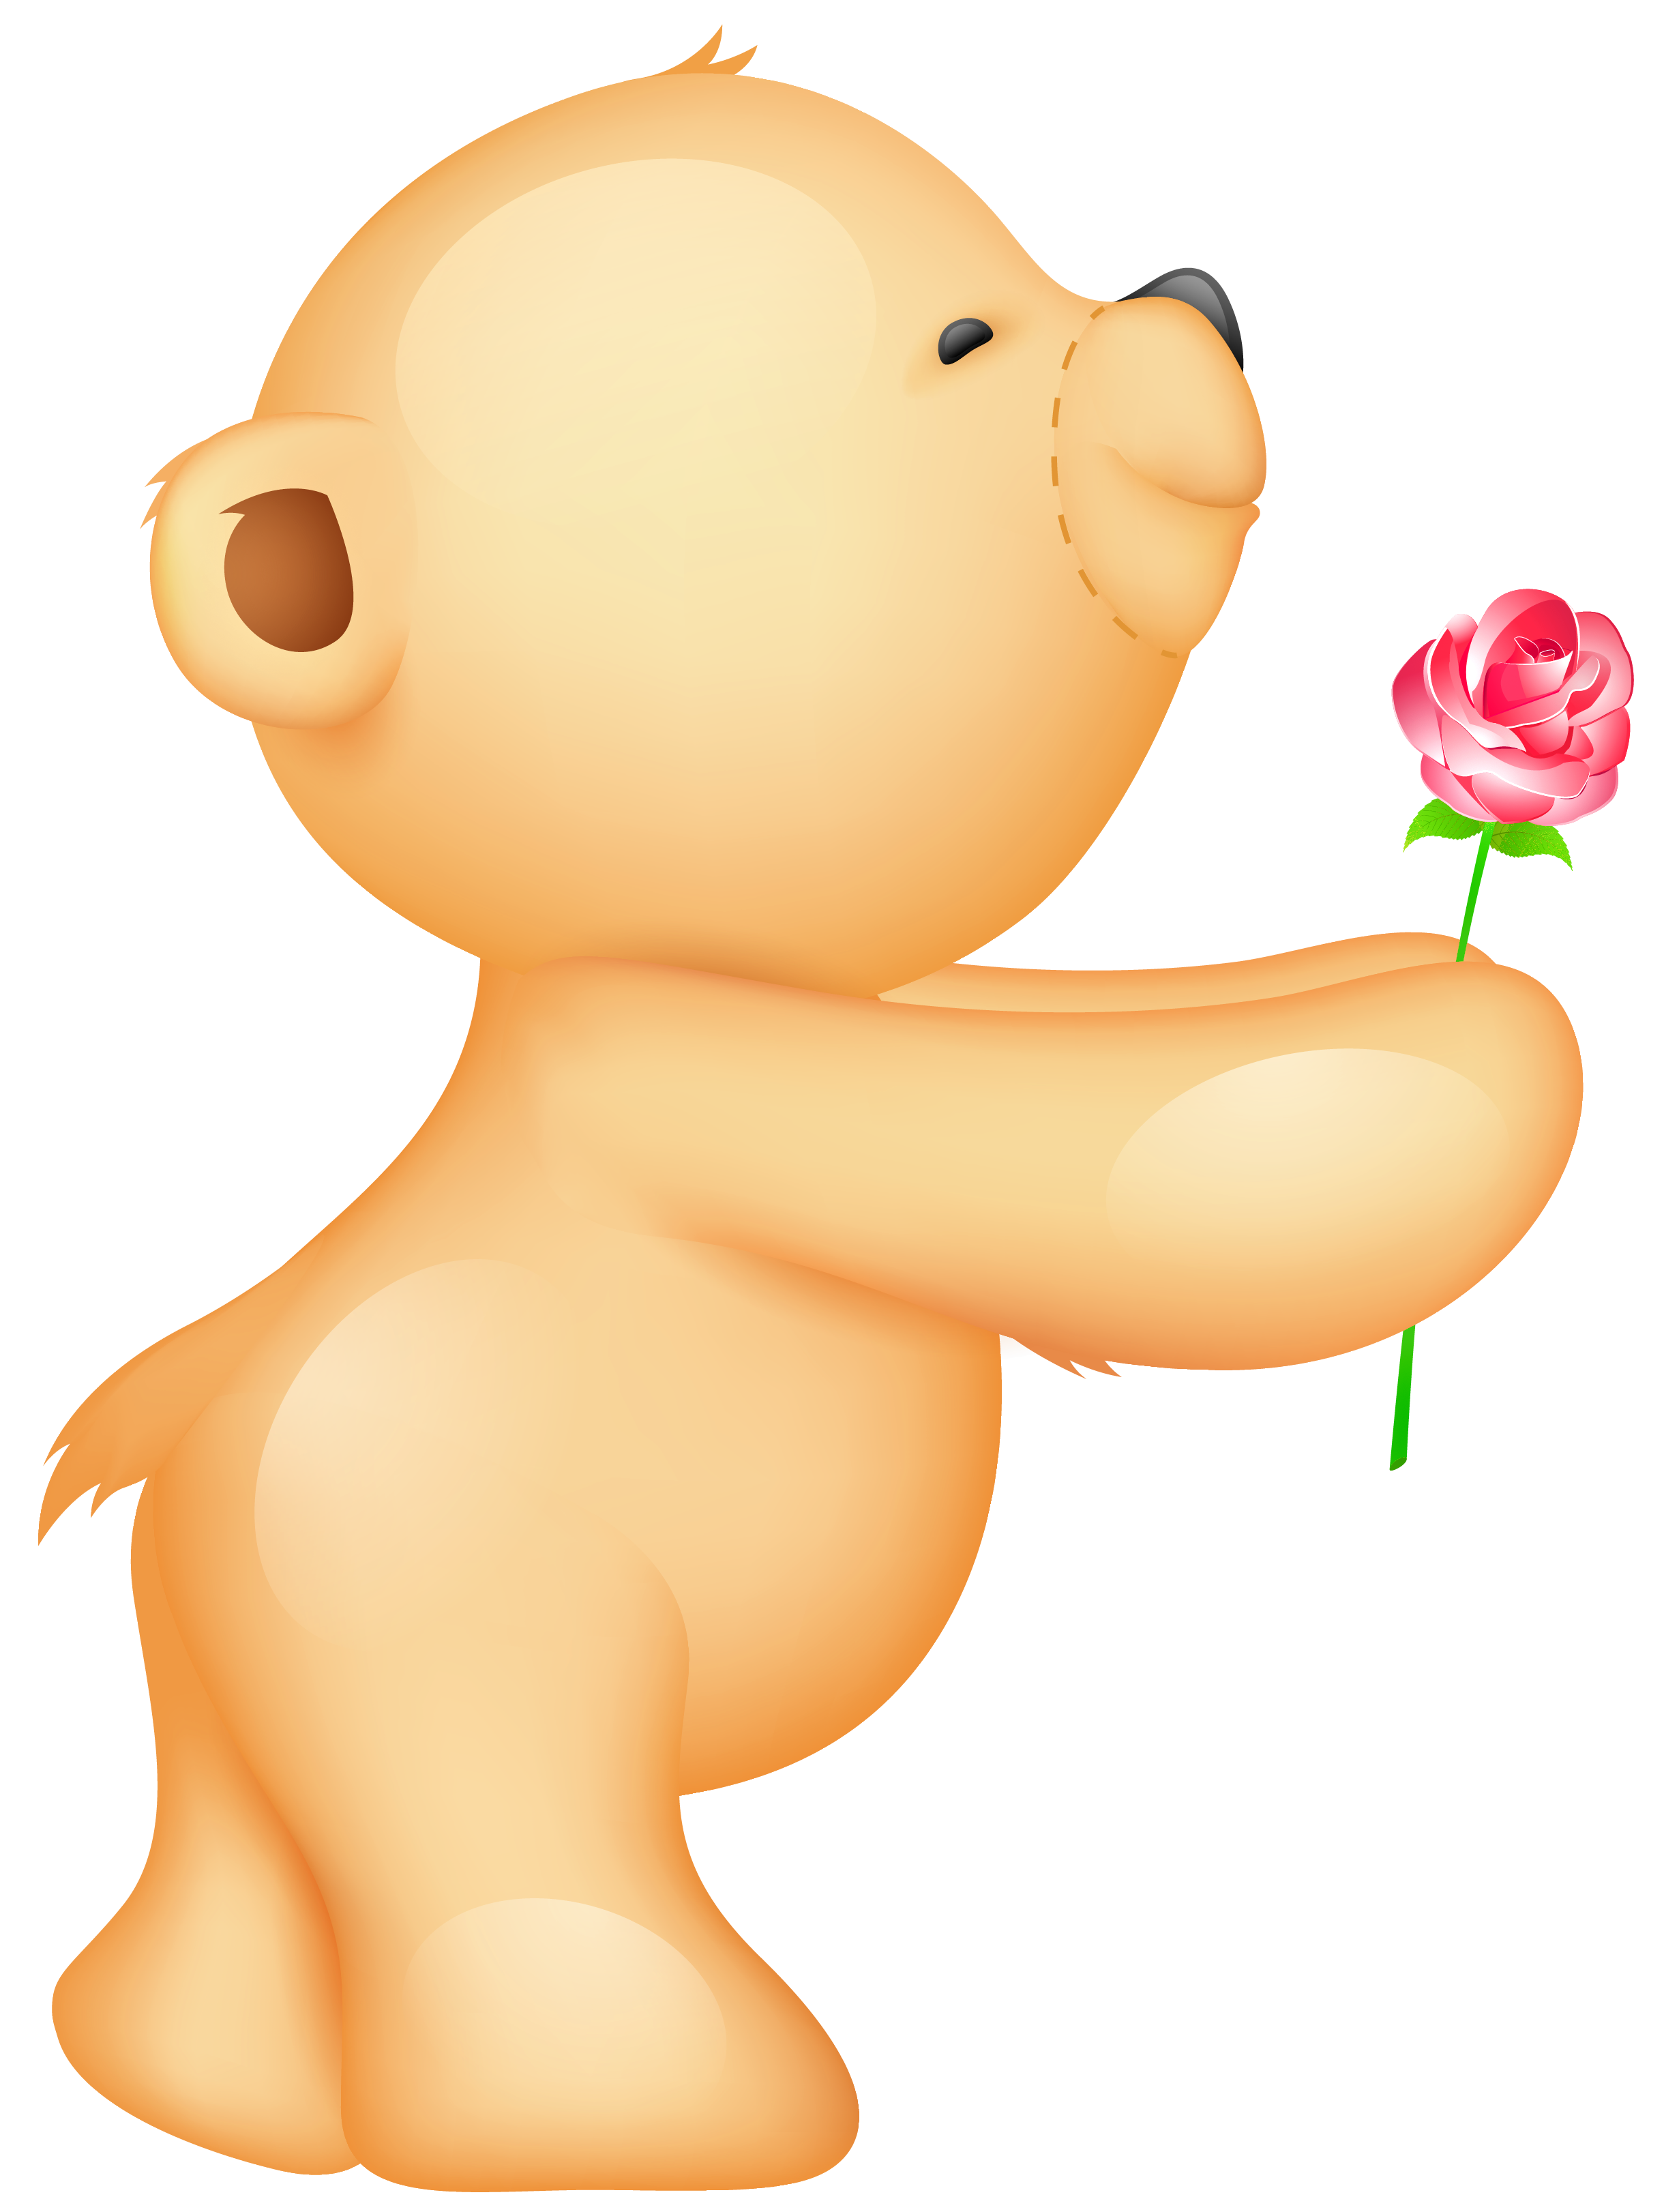 Teddy with rose picture. Cute valentine clipart png